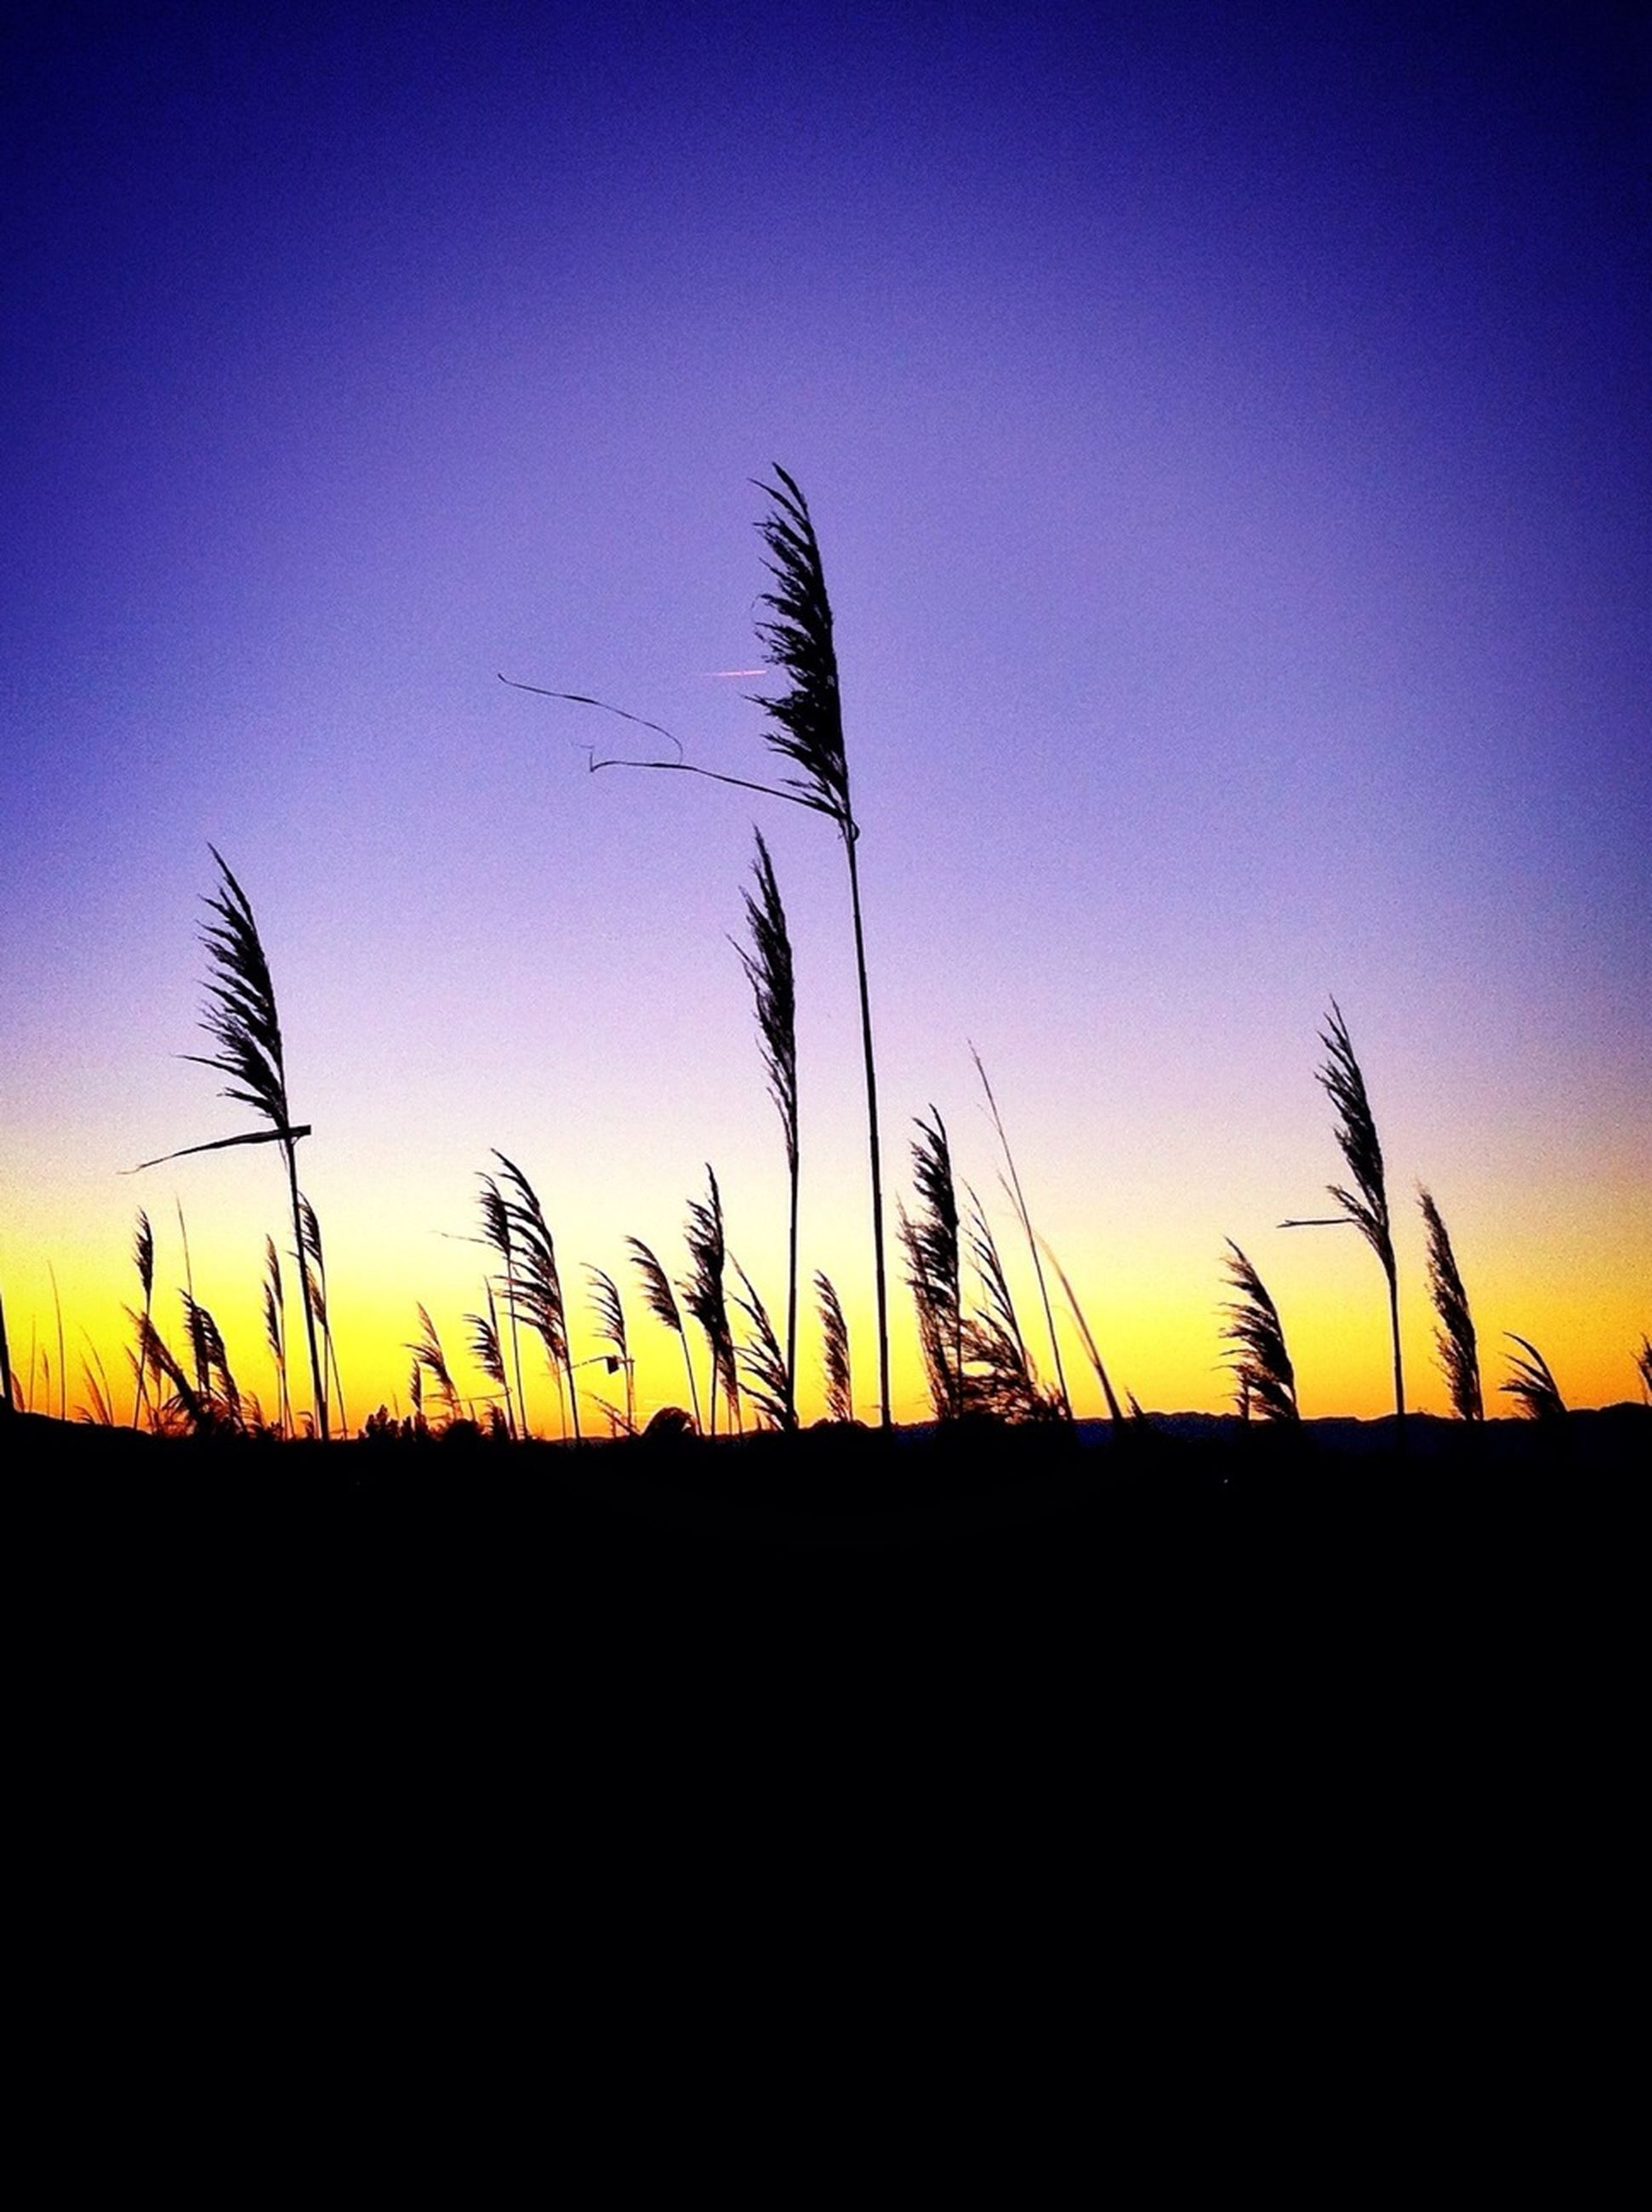 sunset, clear sky, silhouette, copy space, tranquility, tranquil scene, beauty in nature, nature, scenics, blue, field, plant, growth, landscape, idyllic, orange color, sky, outdoors, dusk, no people